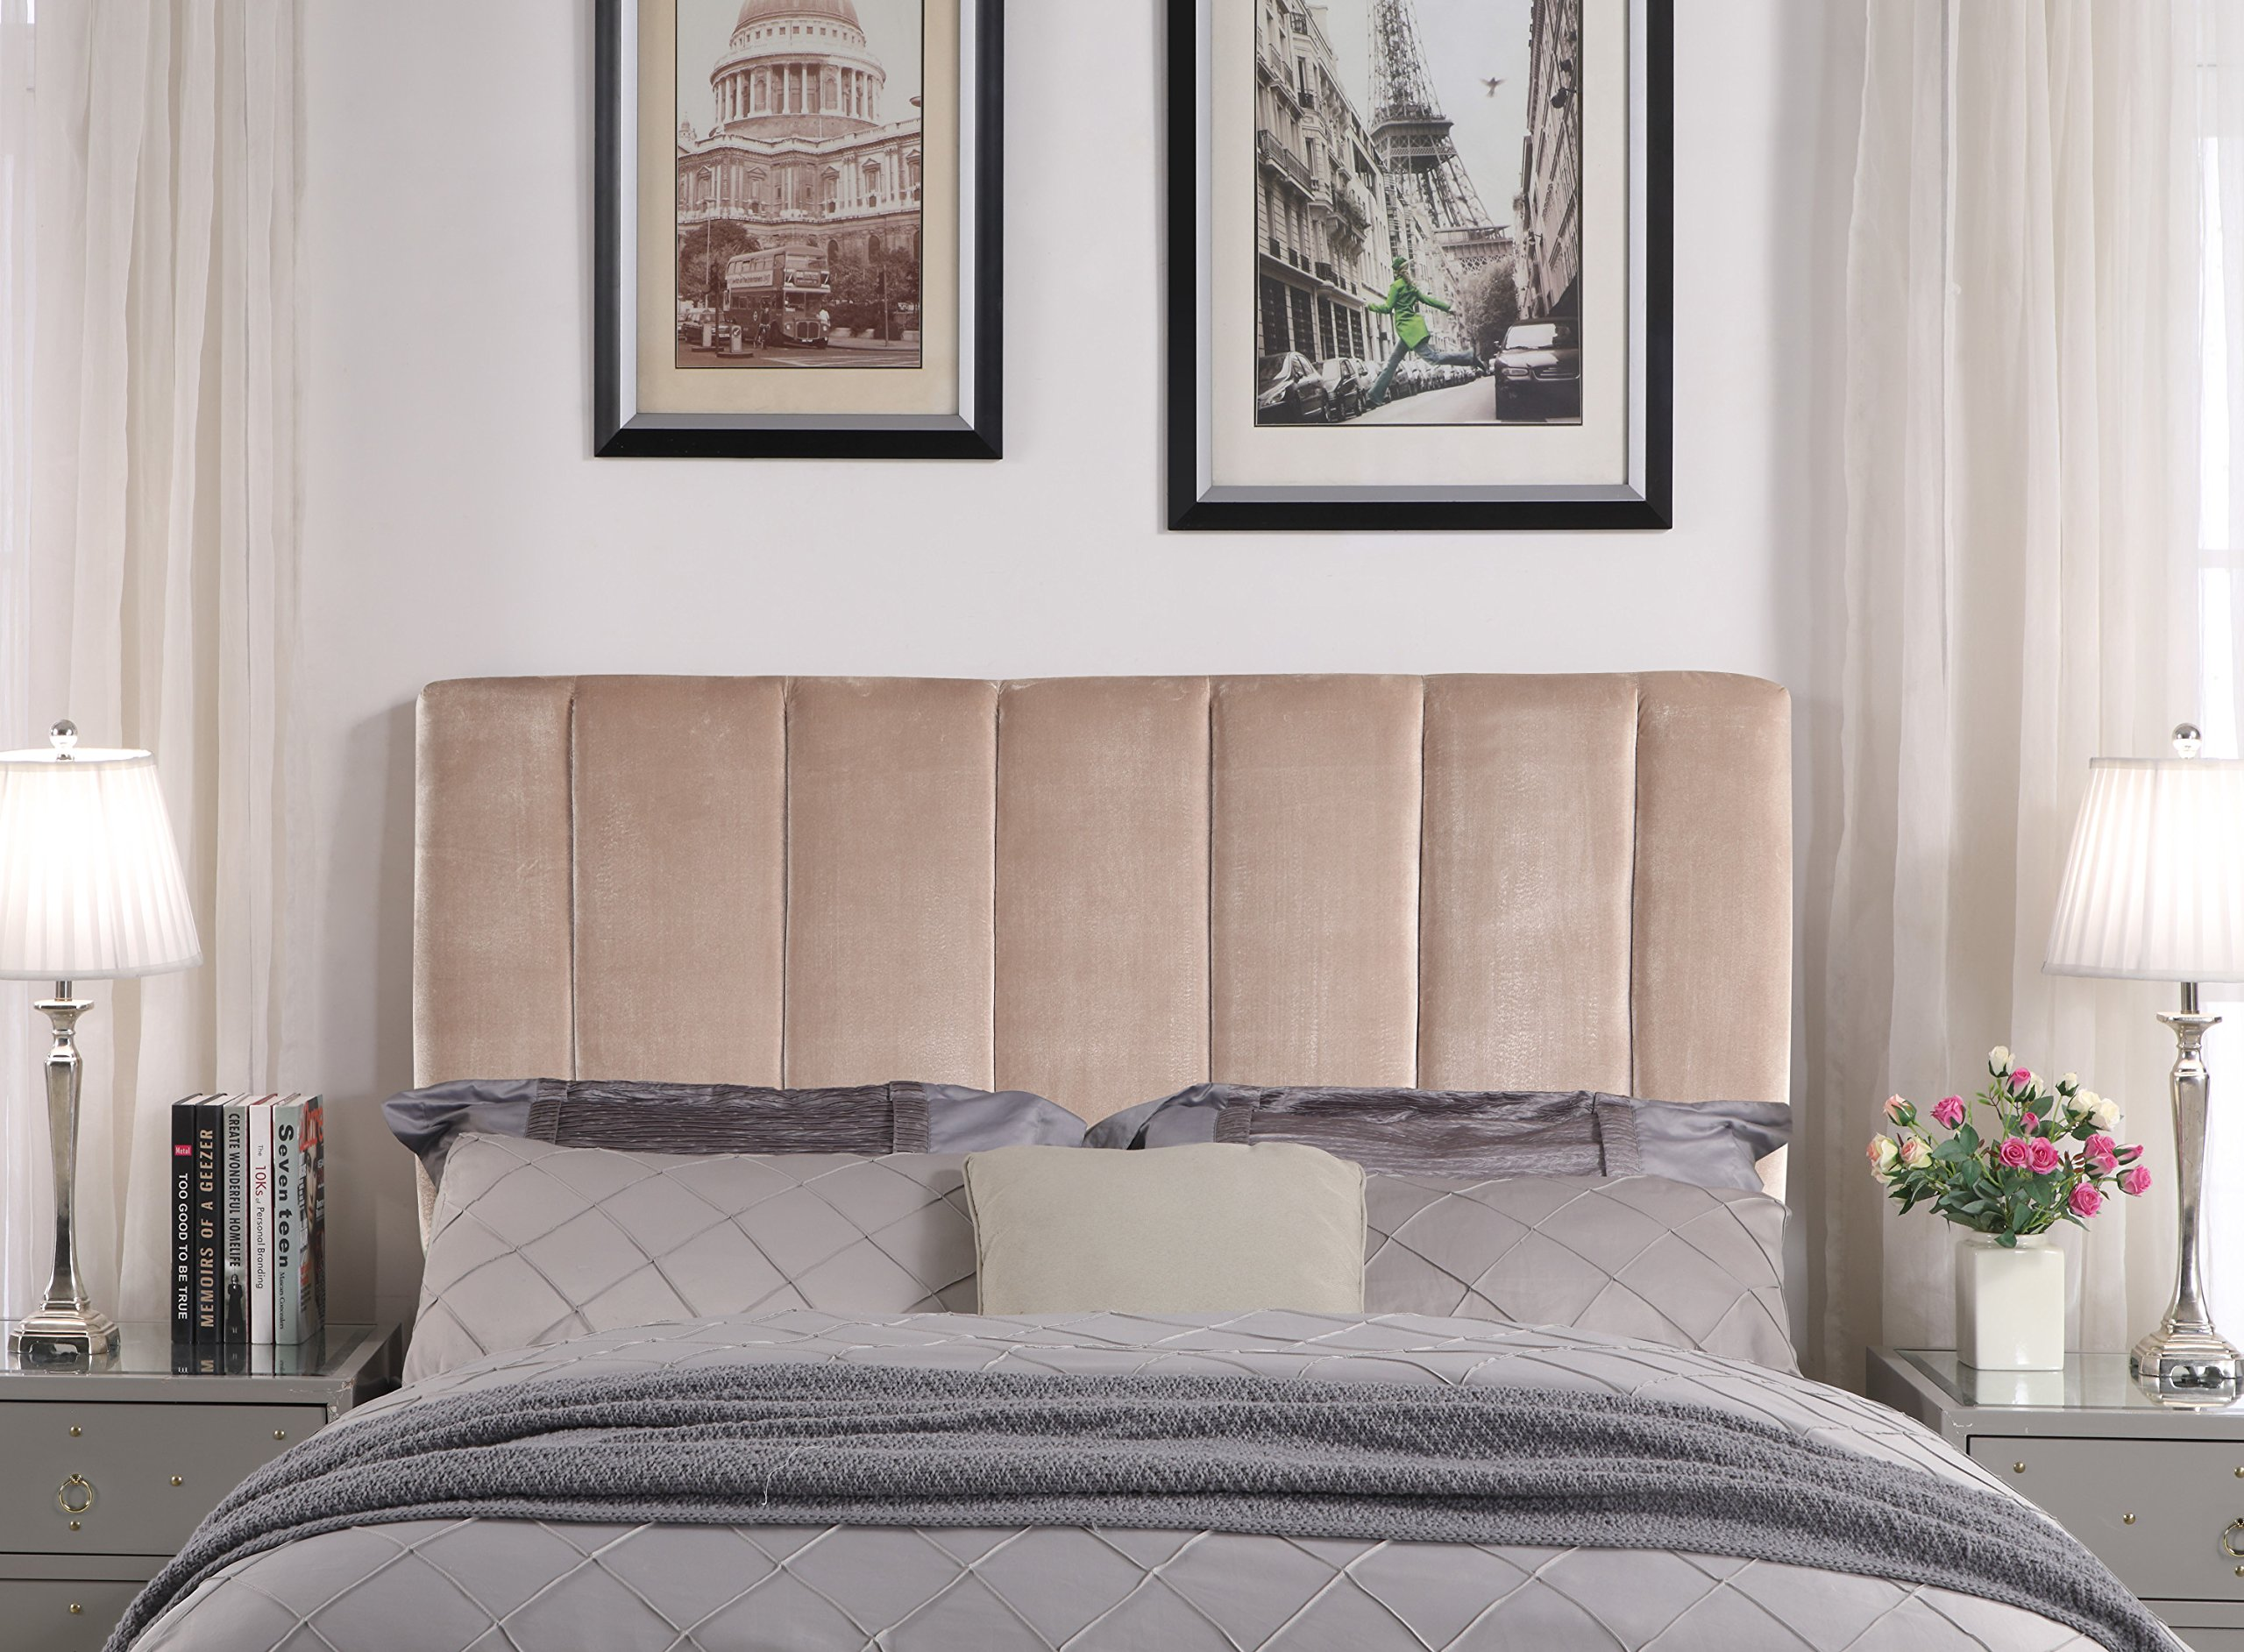 Iconic Home Uriella Headboard Velvet Upholstered Vertical Striped Modern Transitional Full/, Queen, Taupe by Iconic Home